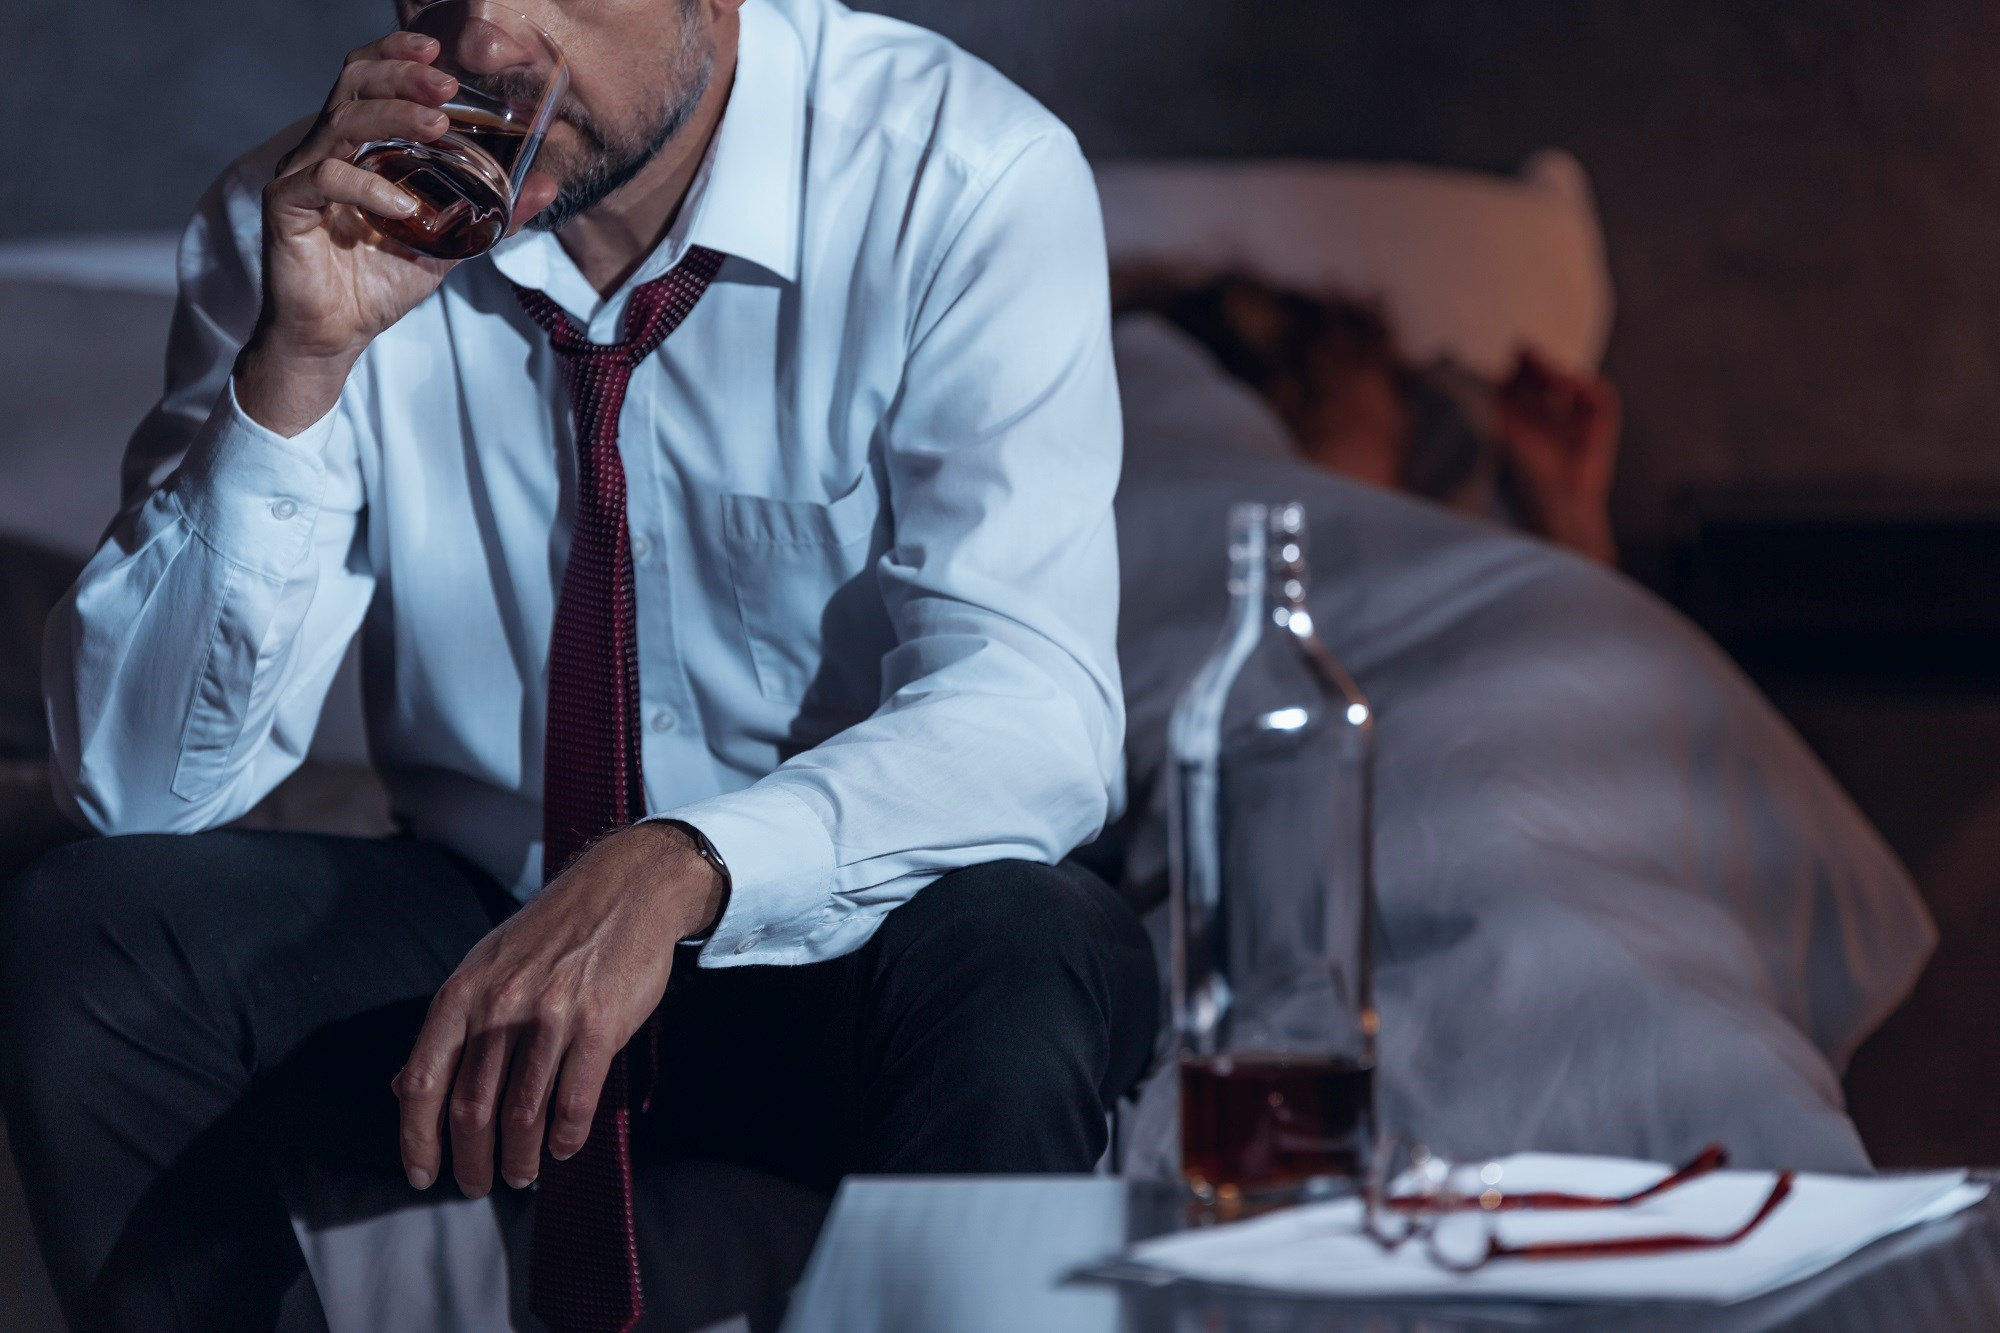 Using alcohol as a sleep aid can lead to alcoholism and maintenance insomnia.